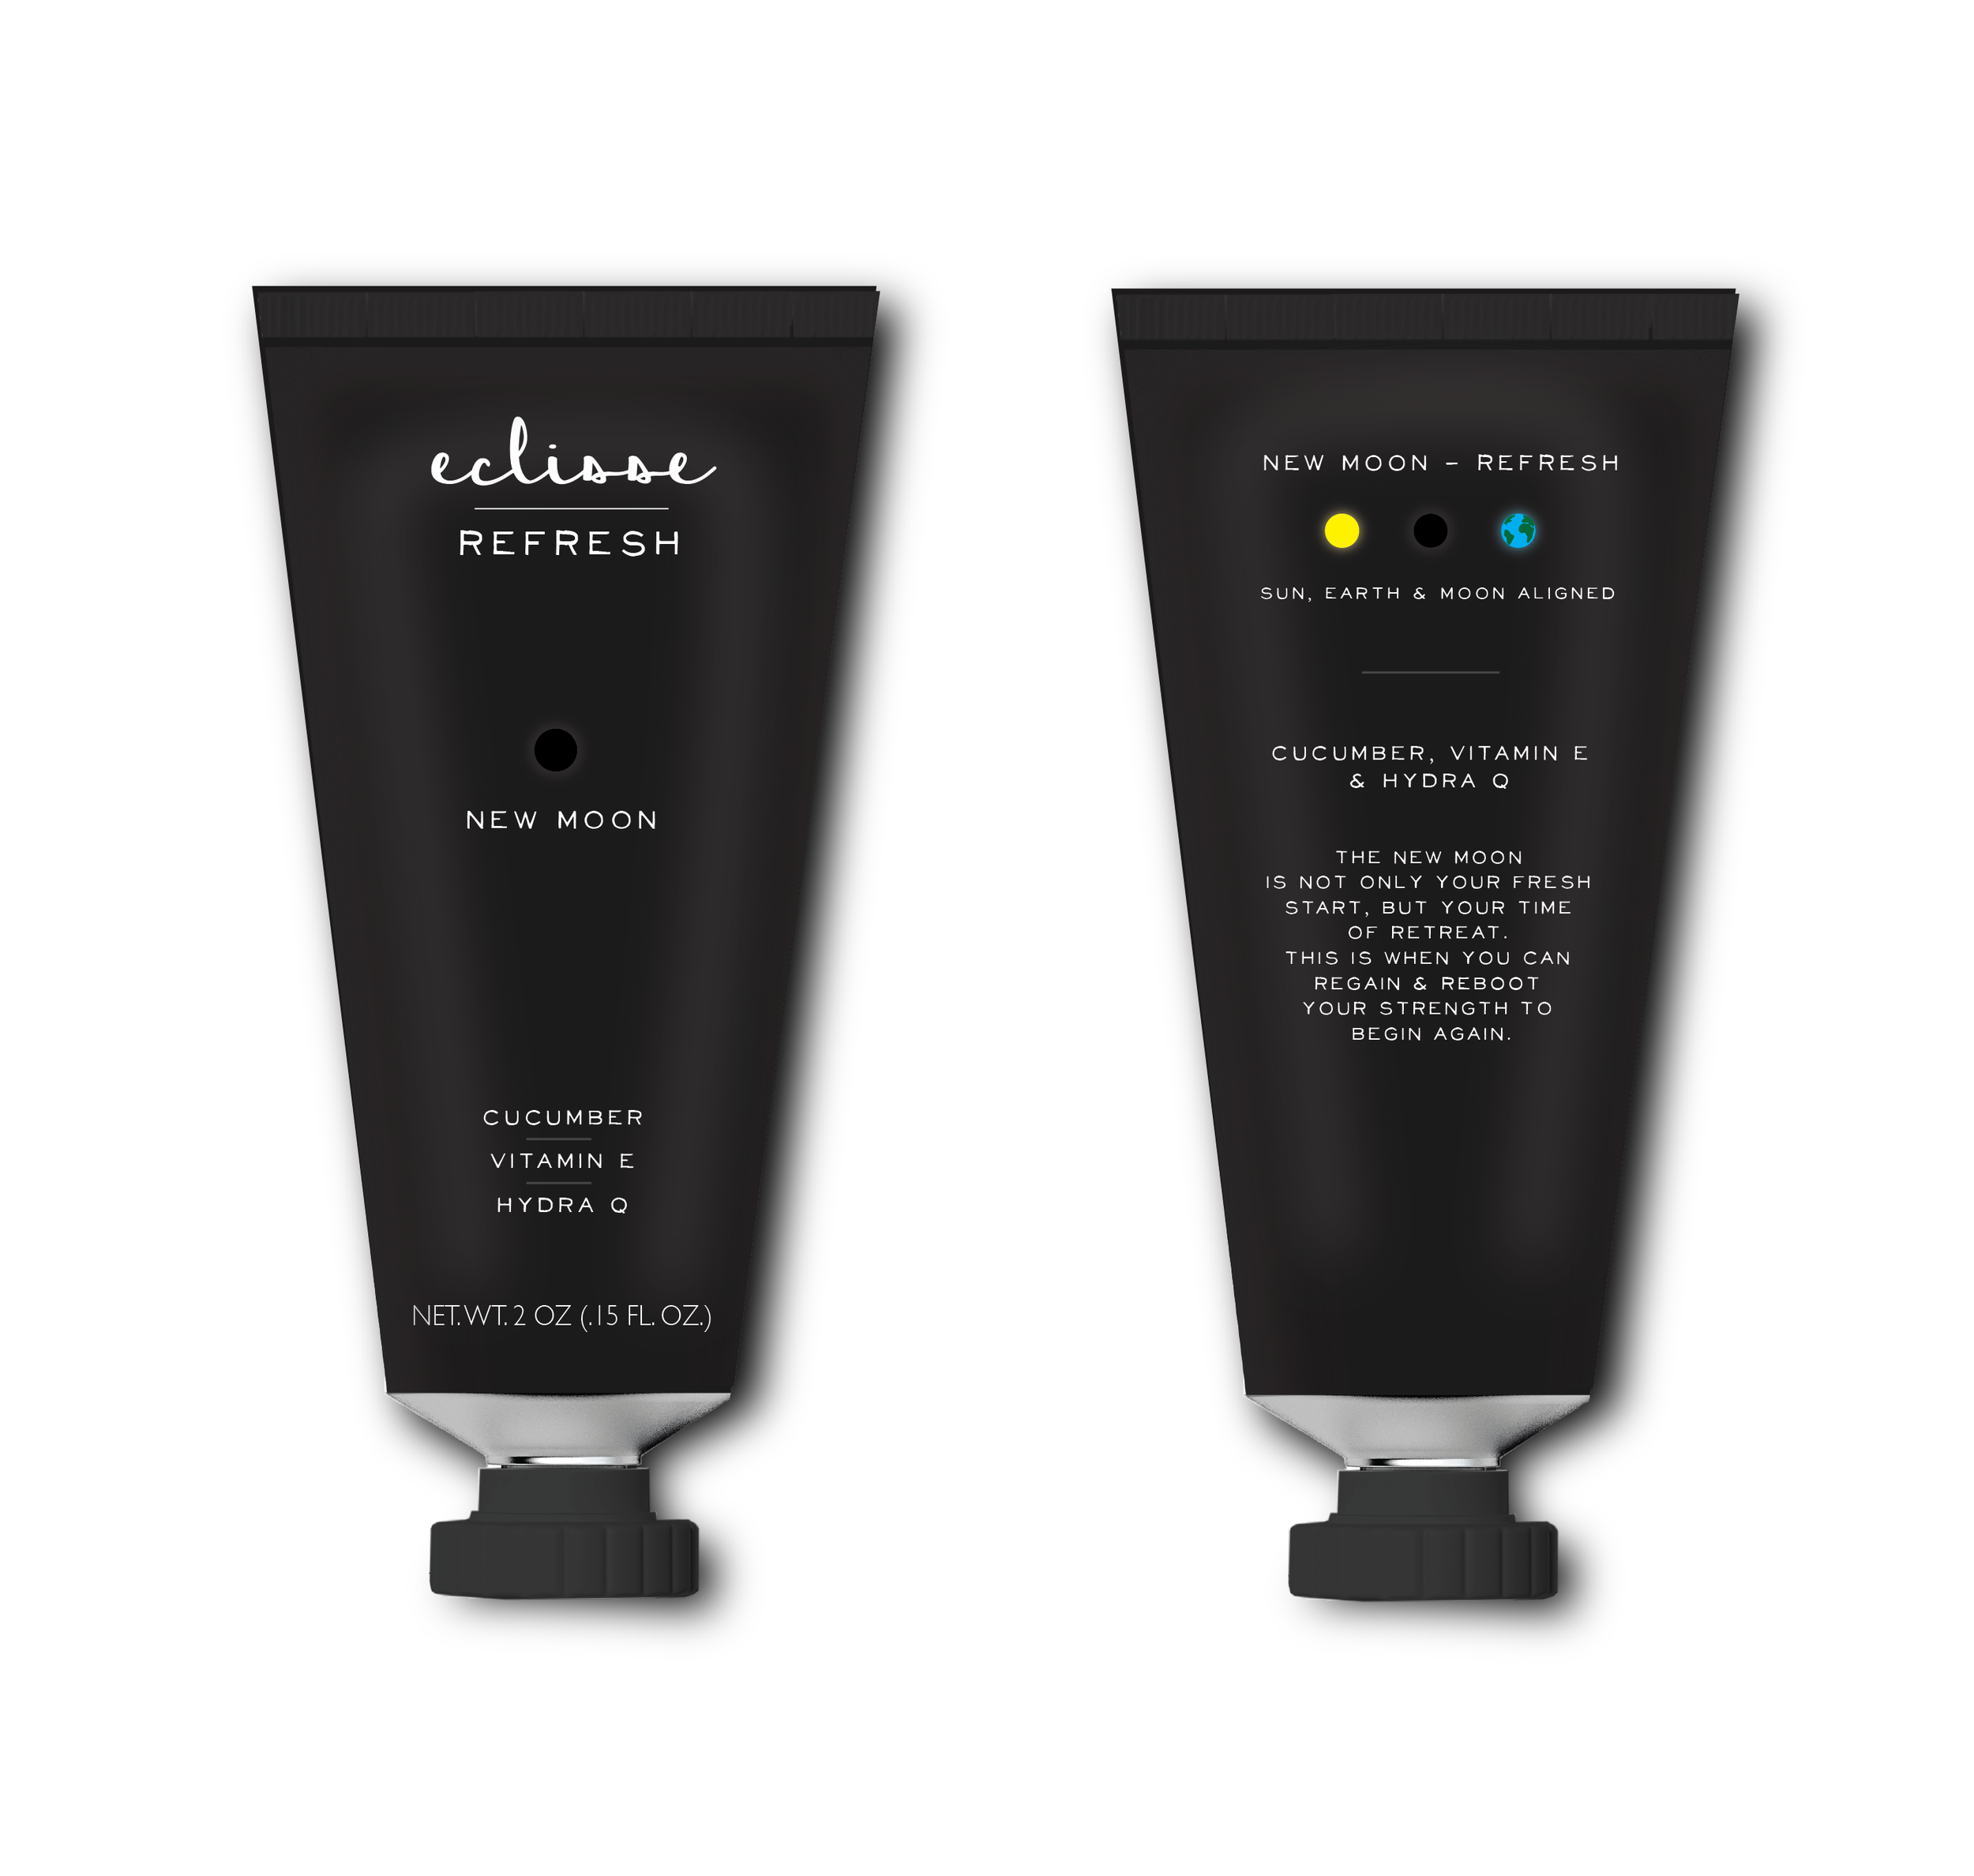 Eclisse_skin care-02.png